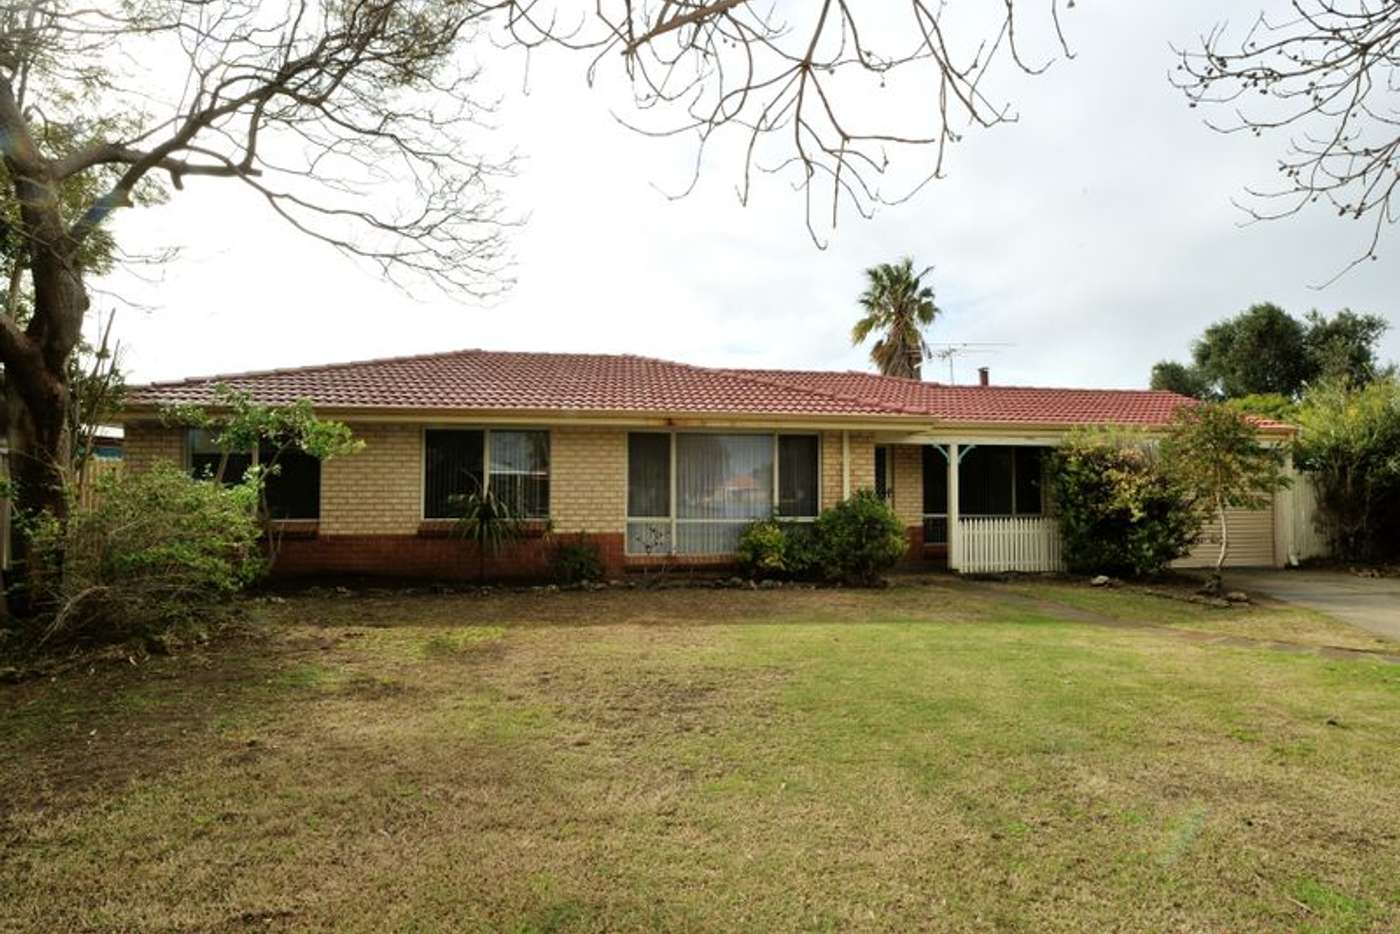 Main view of Homely house listing, 10 Baker Court, Waikiki WA 6169